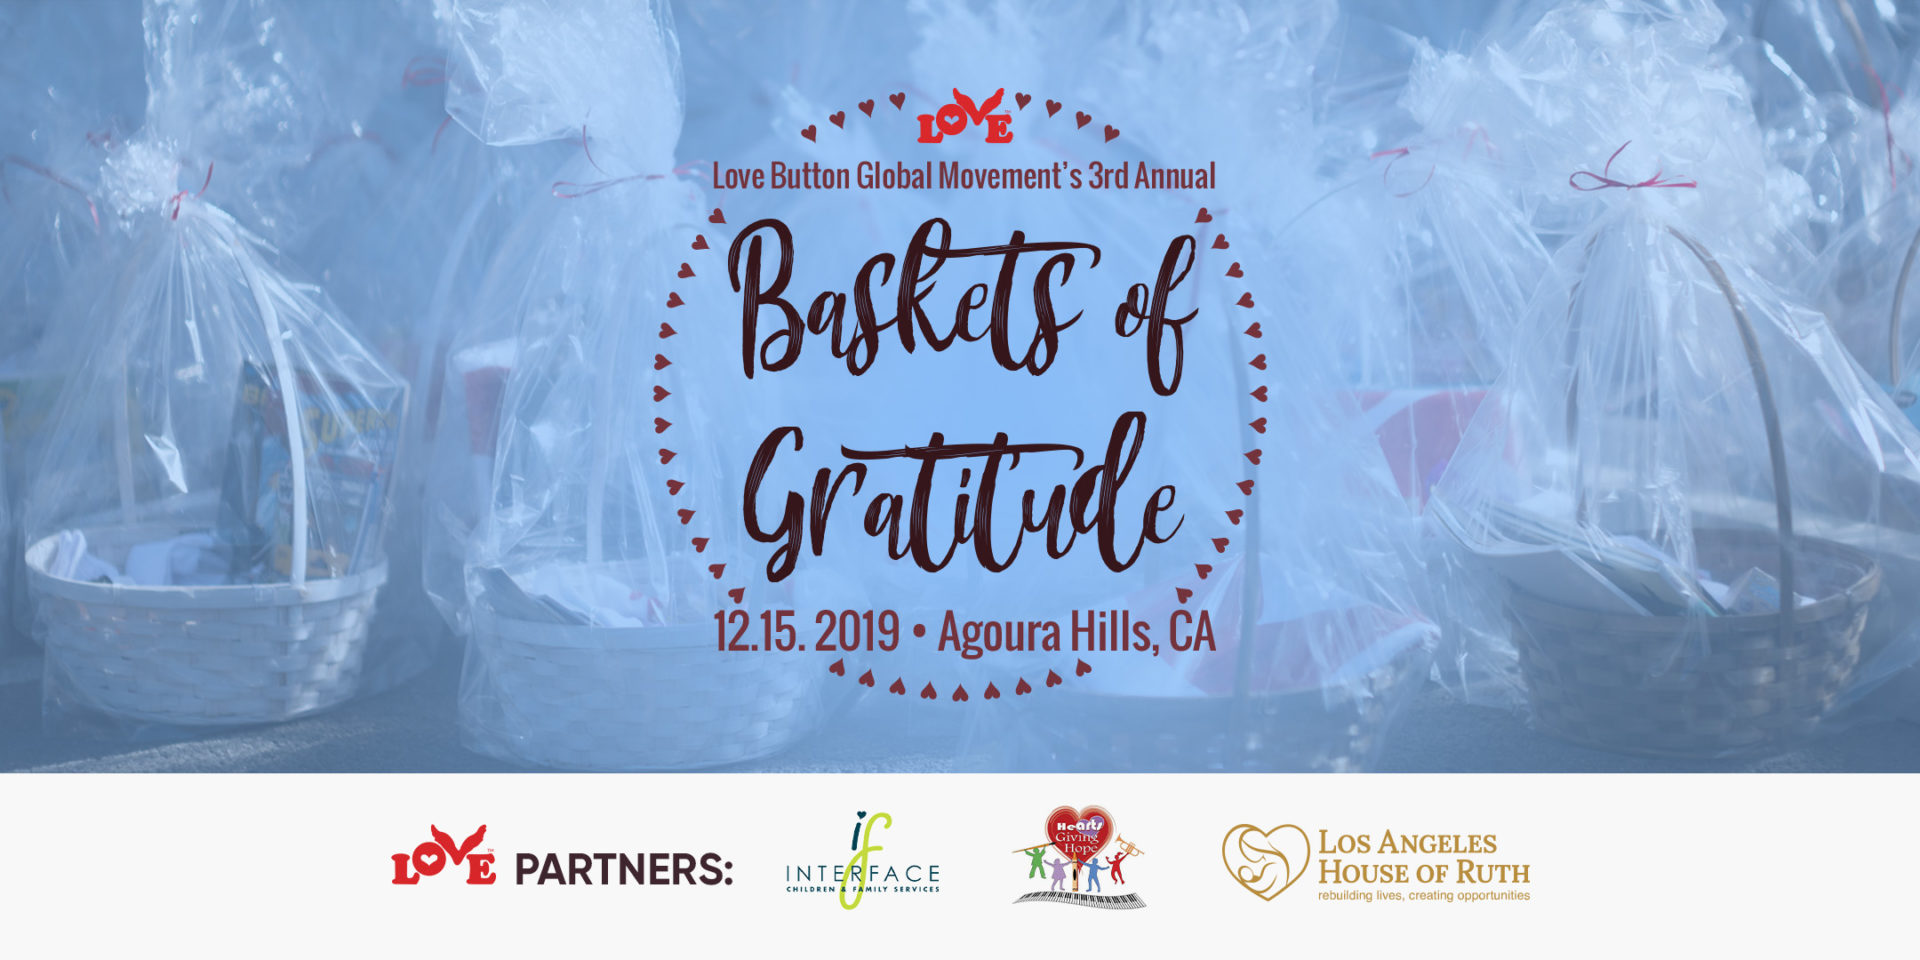 Love Button's 3rd Annual Baskets of Gratitude on December 13